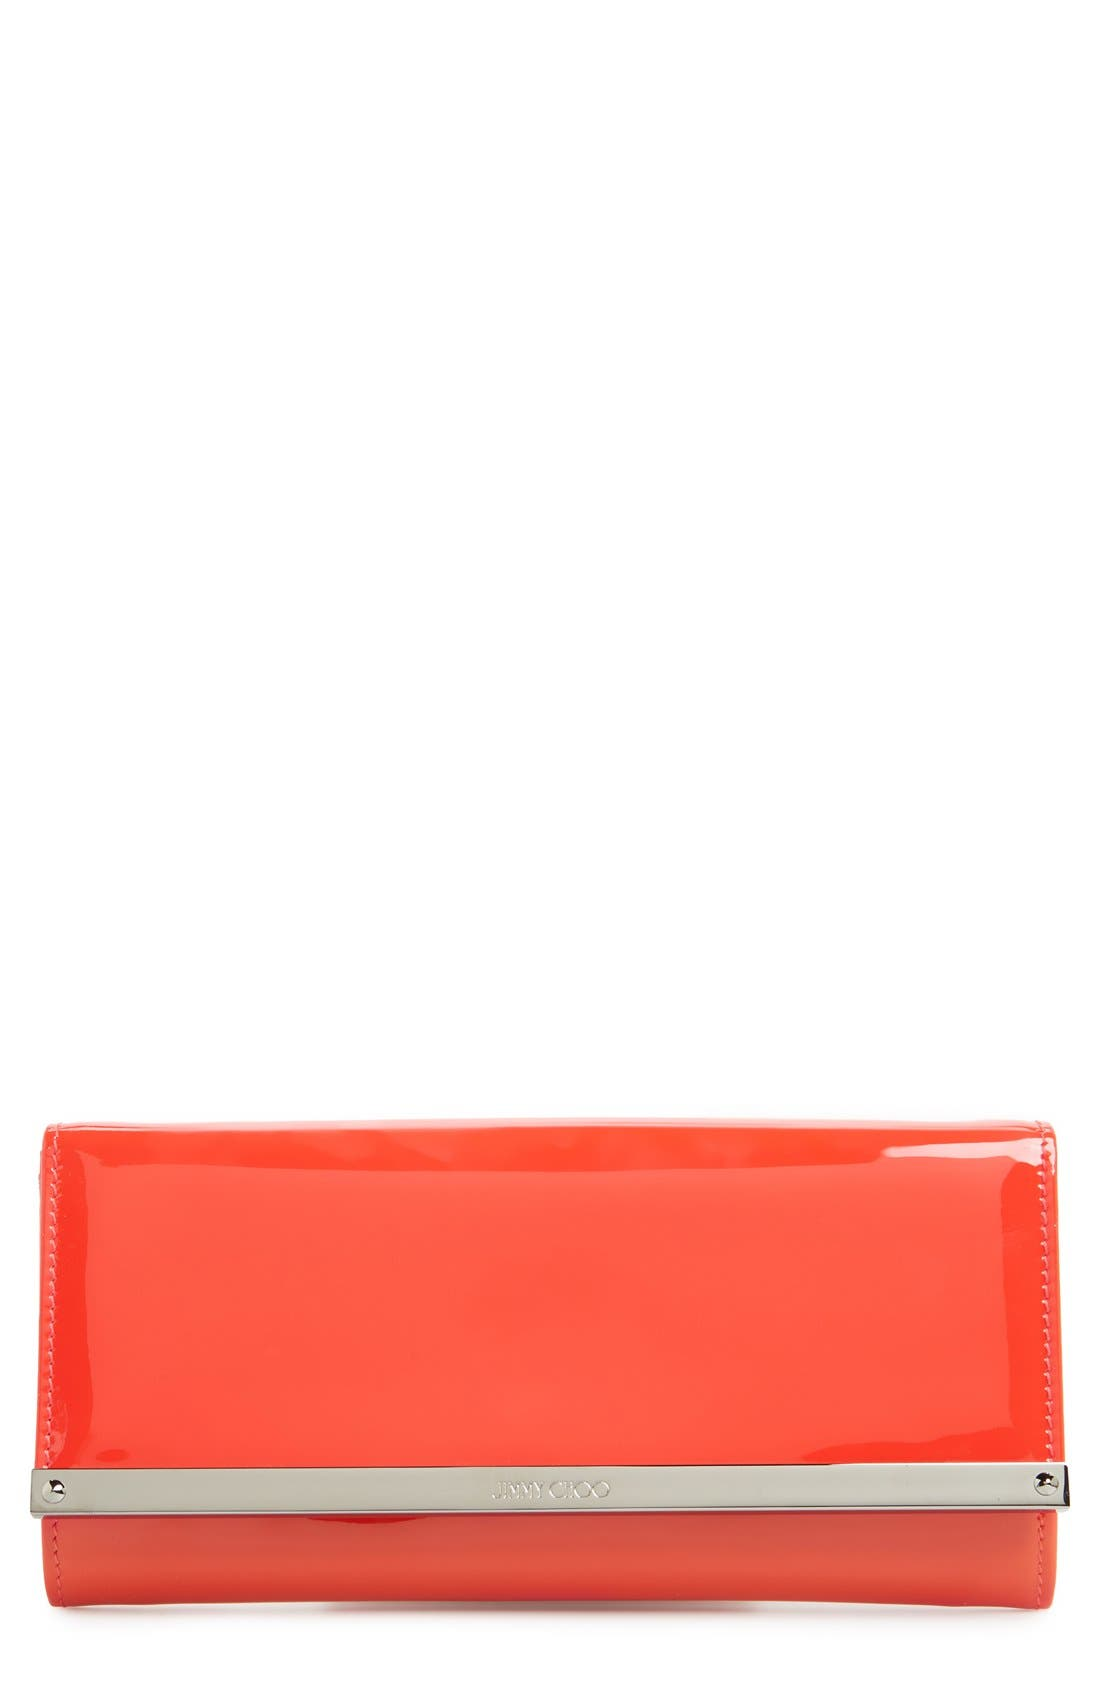 Alternate Image 1 Selected - Jimmy Choo 'Milla' Patent Leather Wallet on a Chain